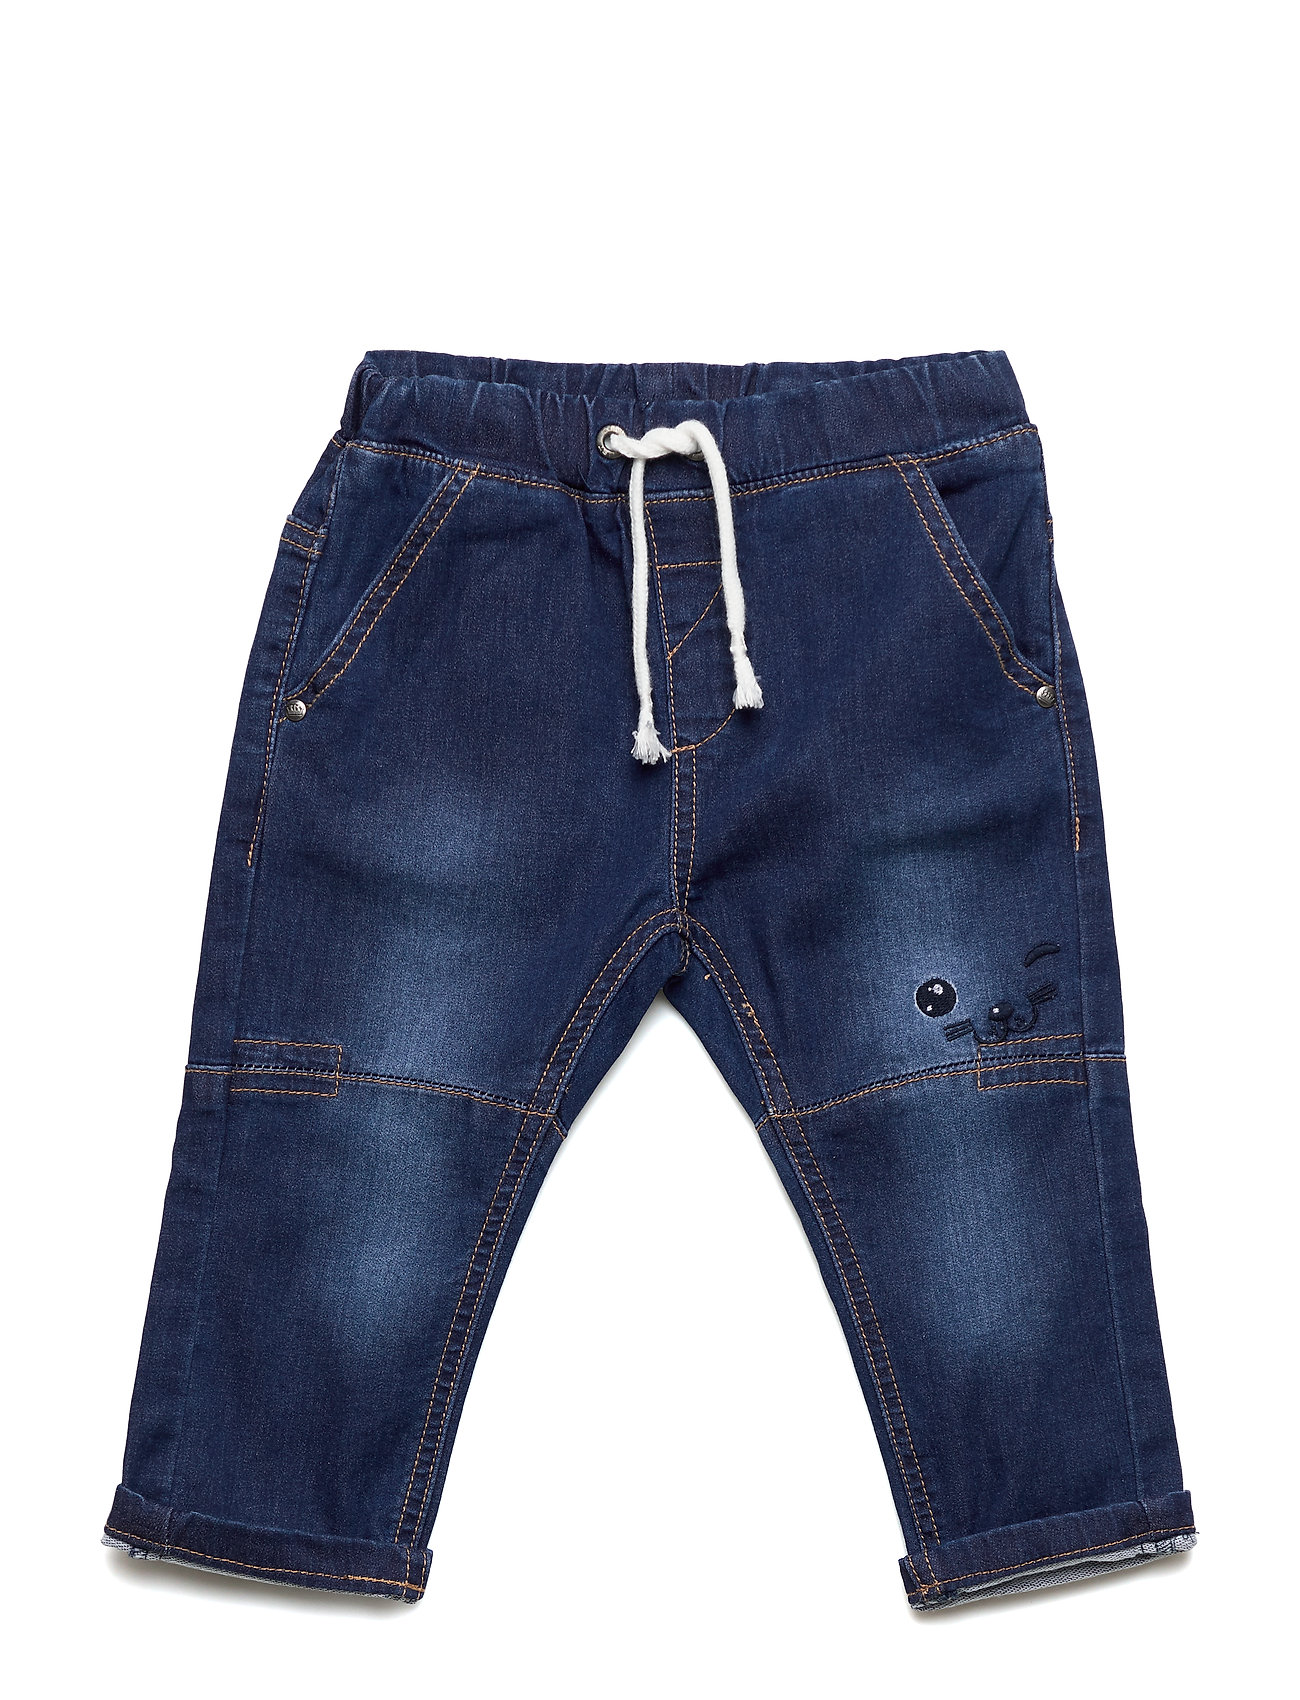 Hust & Claire Junior - Jeans - DENIM